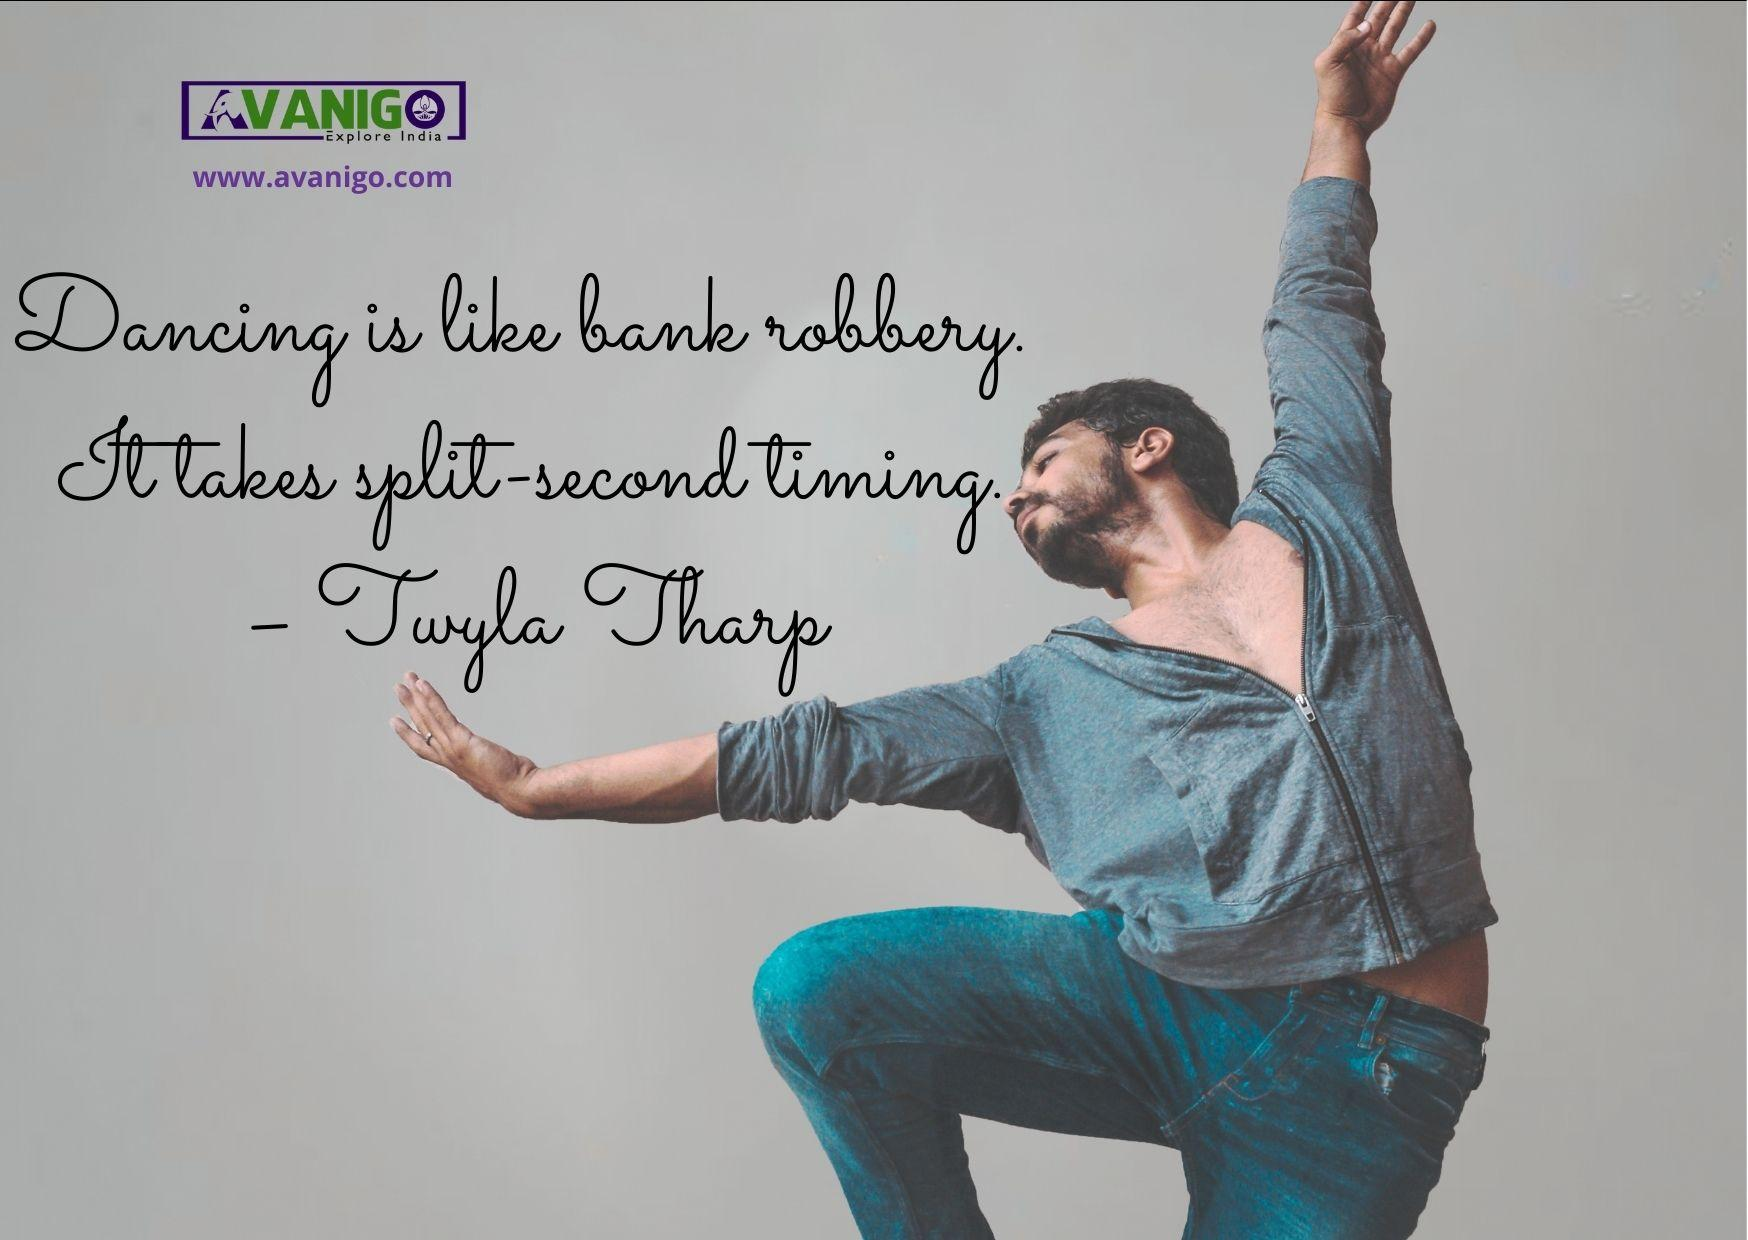 Dancing is like bank robbery. It takes split-second timing.